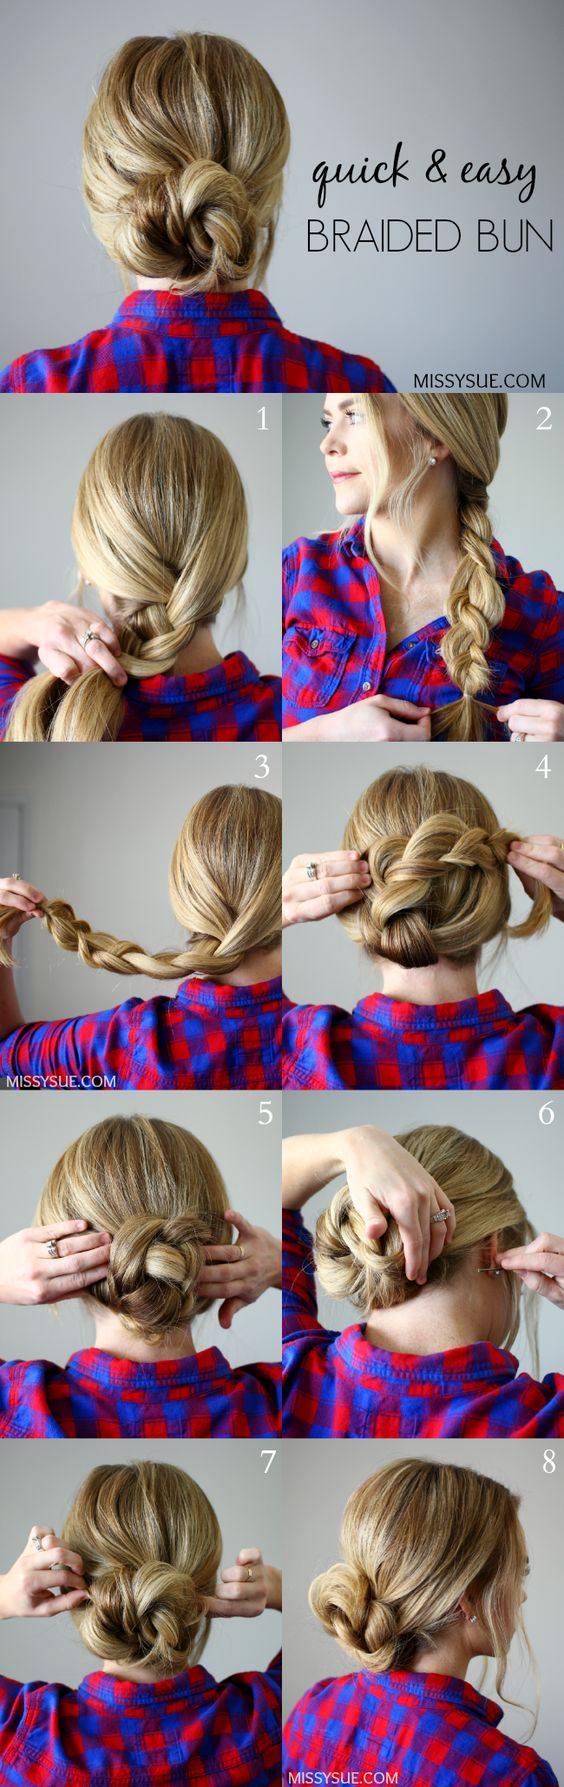 Low Bun Hair Tutorials And Celebrity Looks